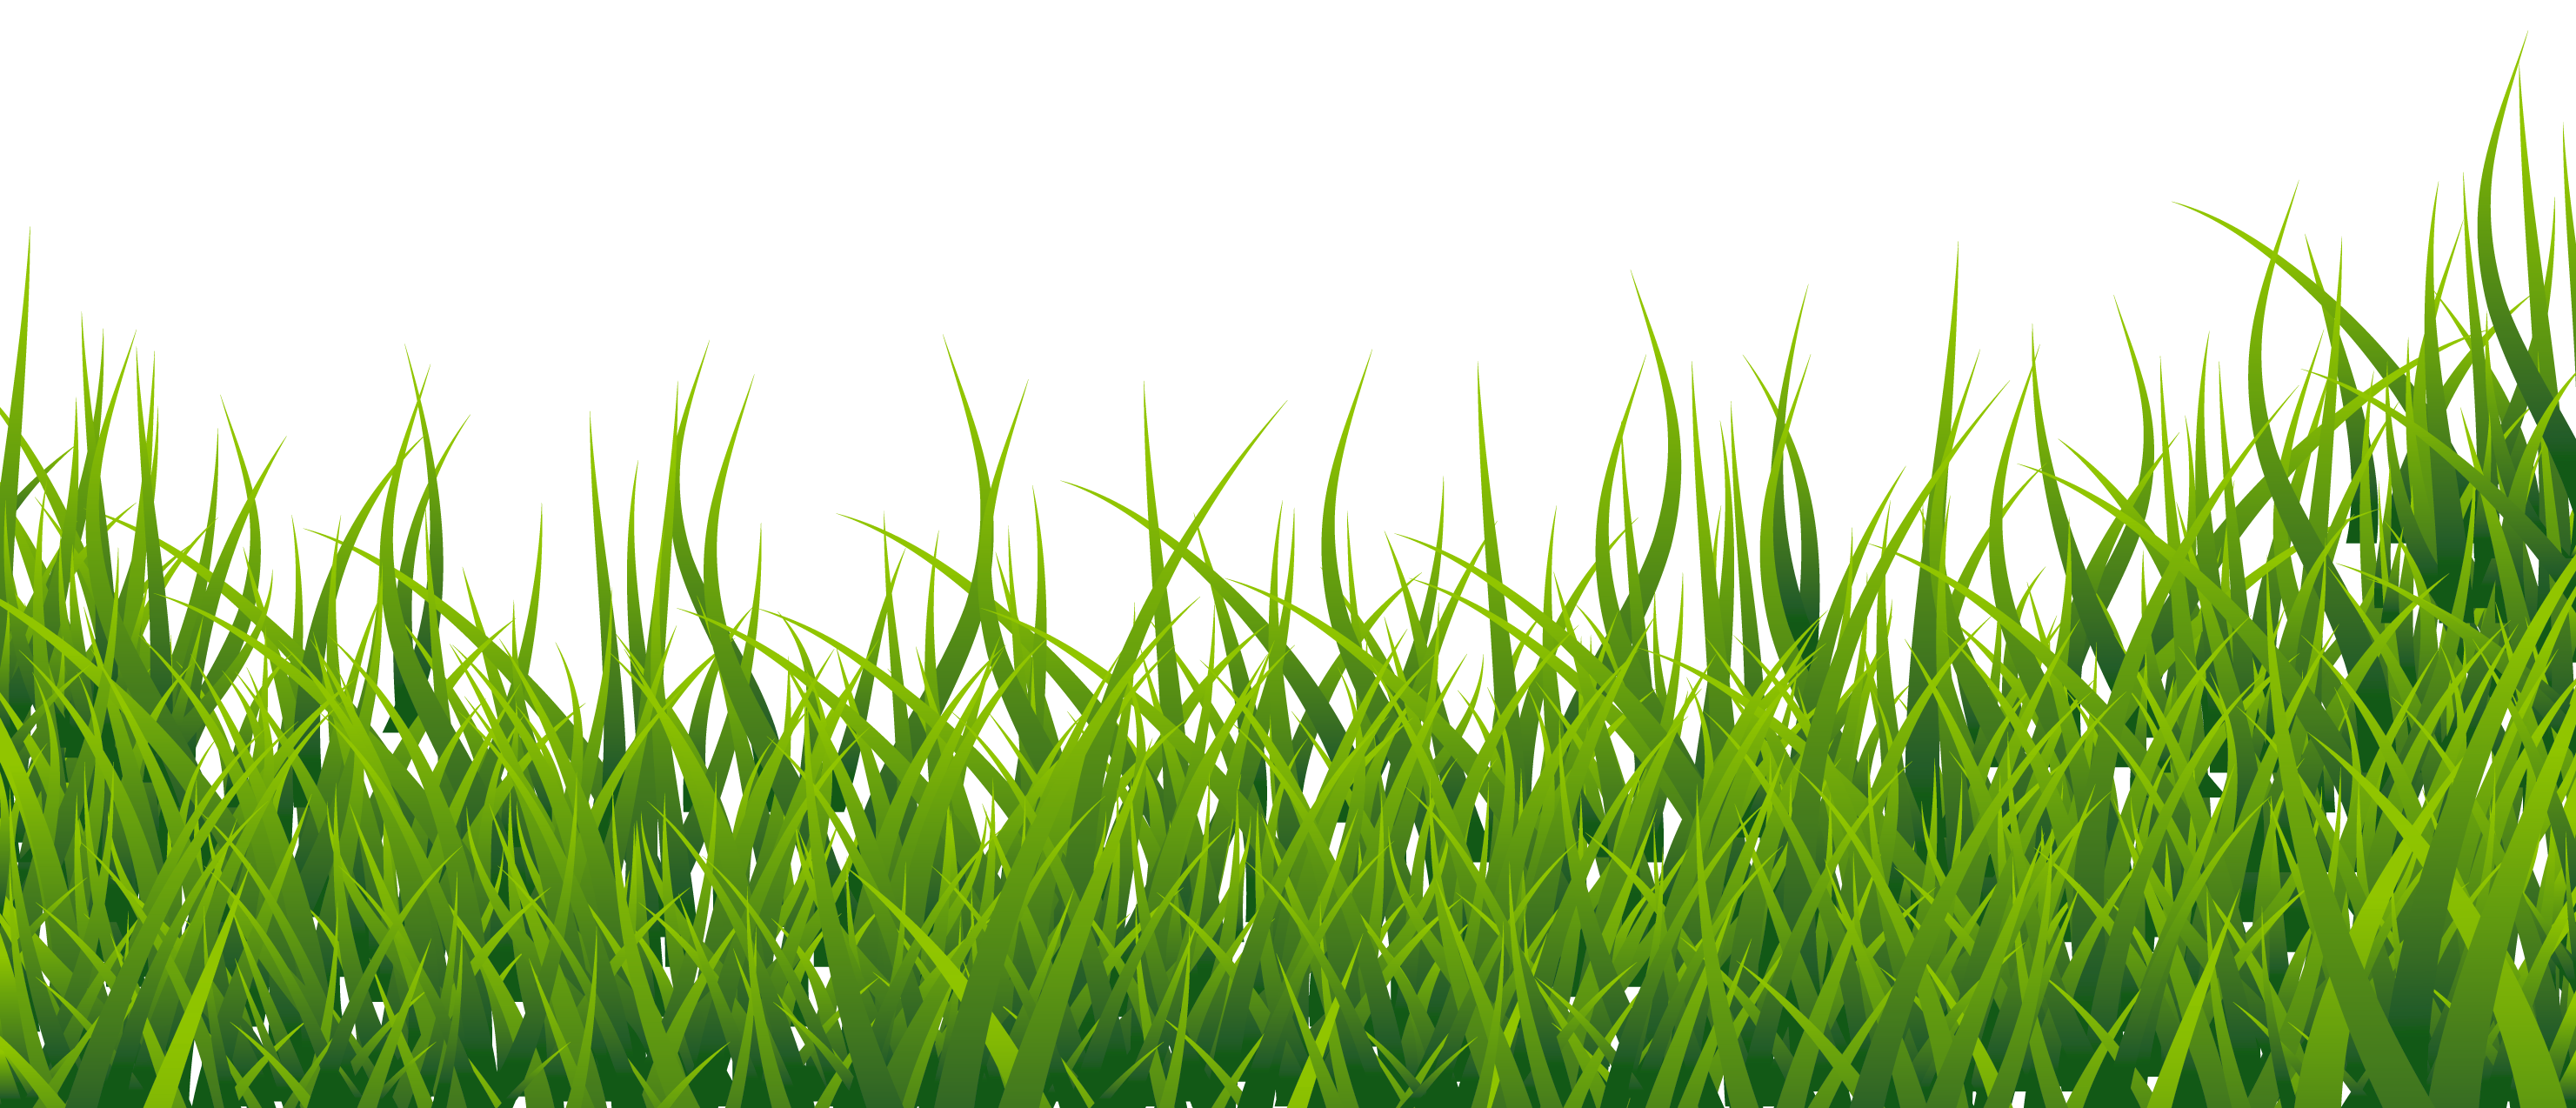 Grass border png. Clipart picture gallery yopriceville